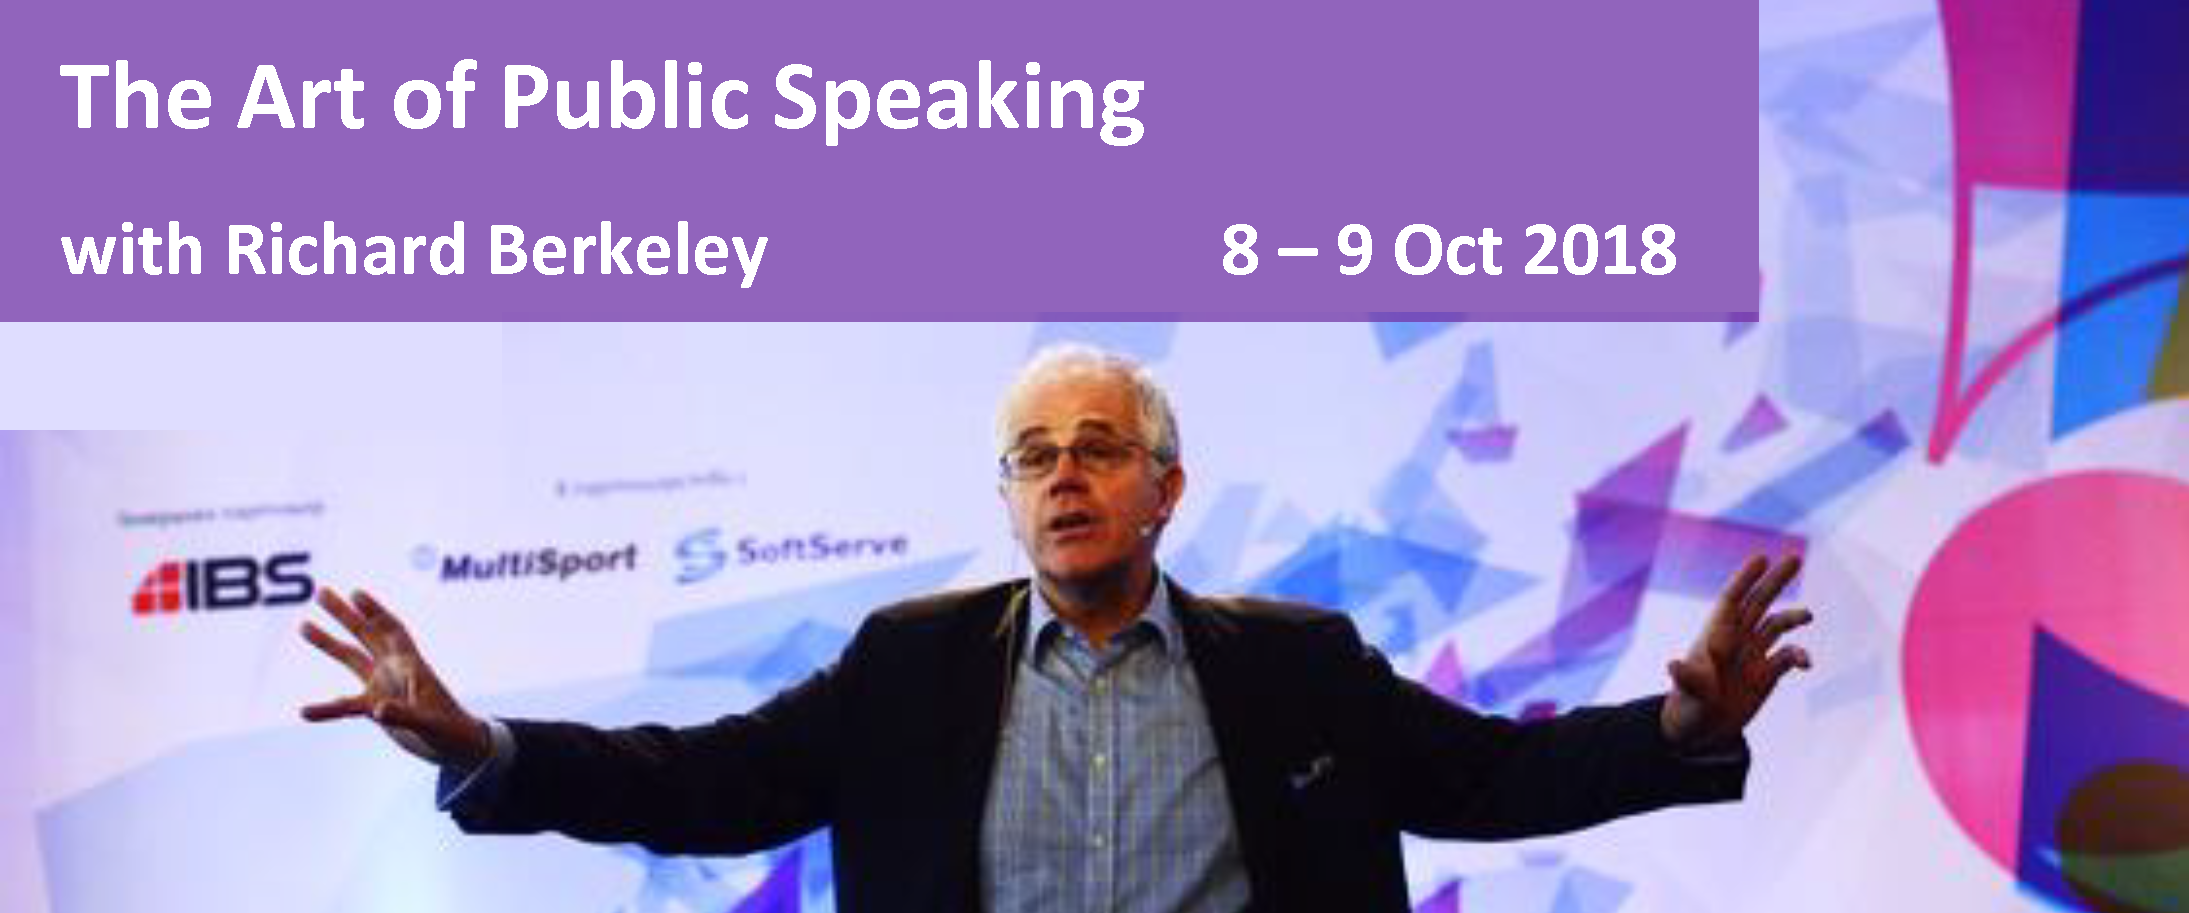 Richard Berkeley The Art of Public Speaking